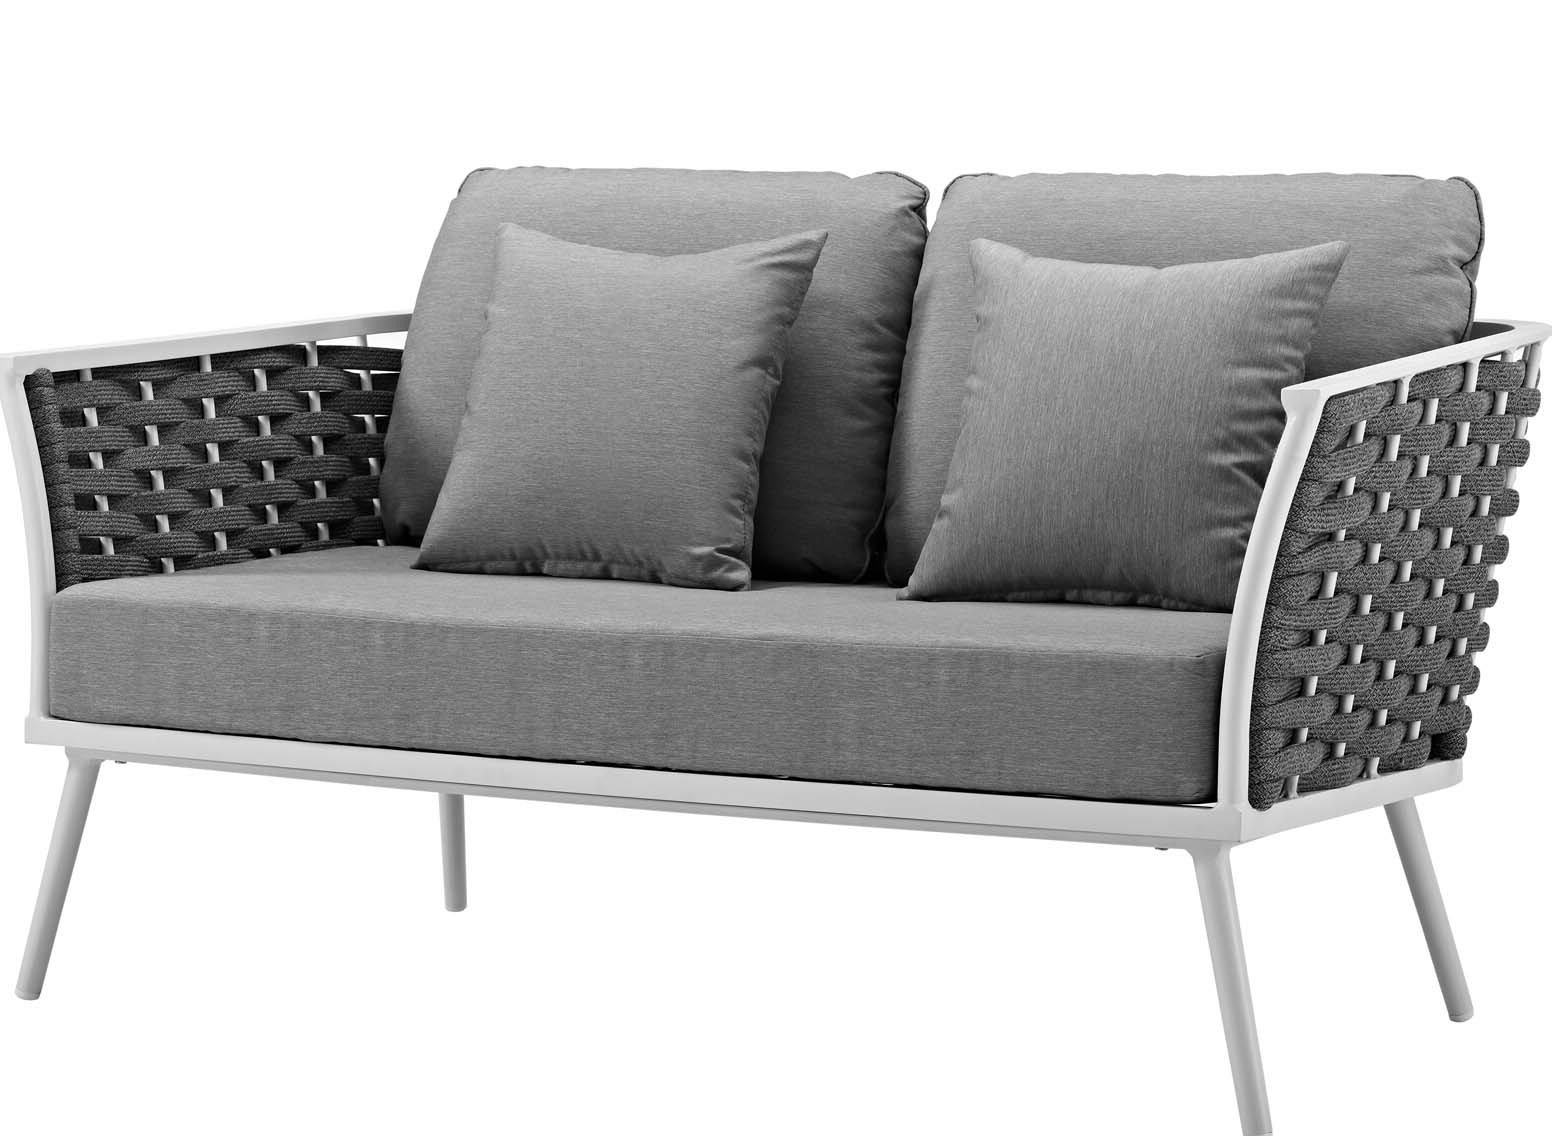 Wayfair For Newest Wakeland Wicker Loveseats With Cushions (Gallery 2 of 25)